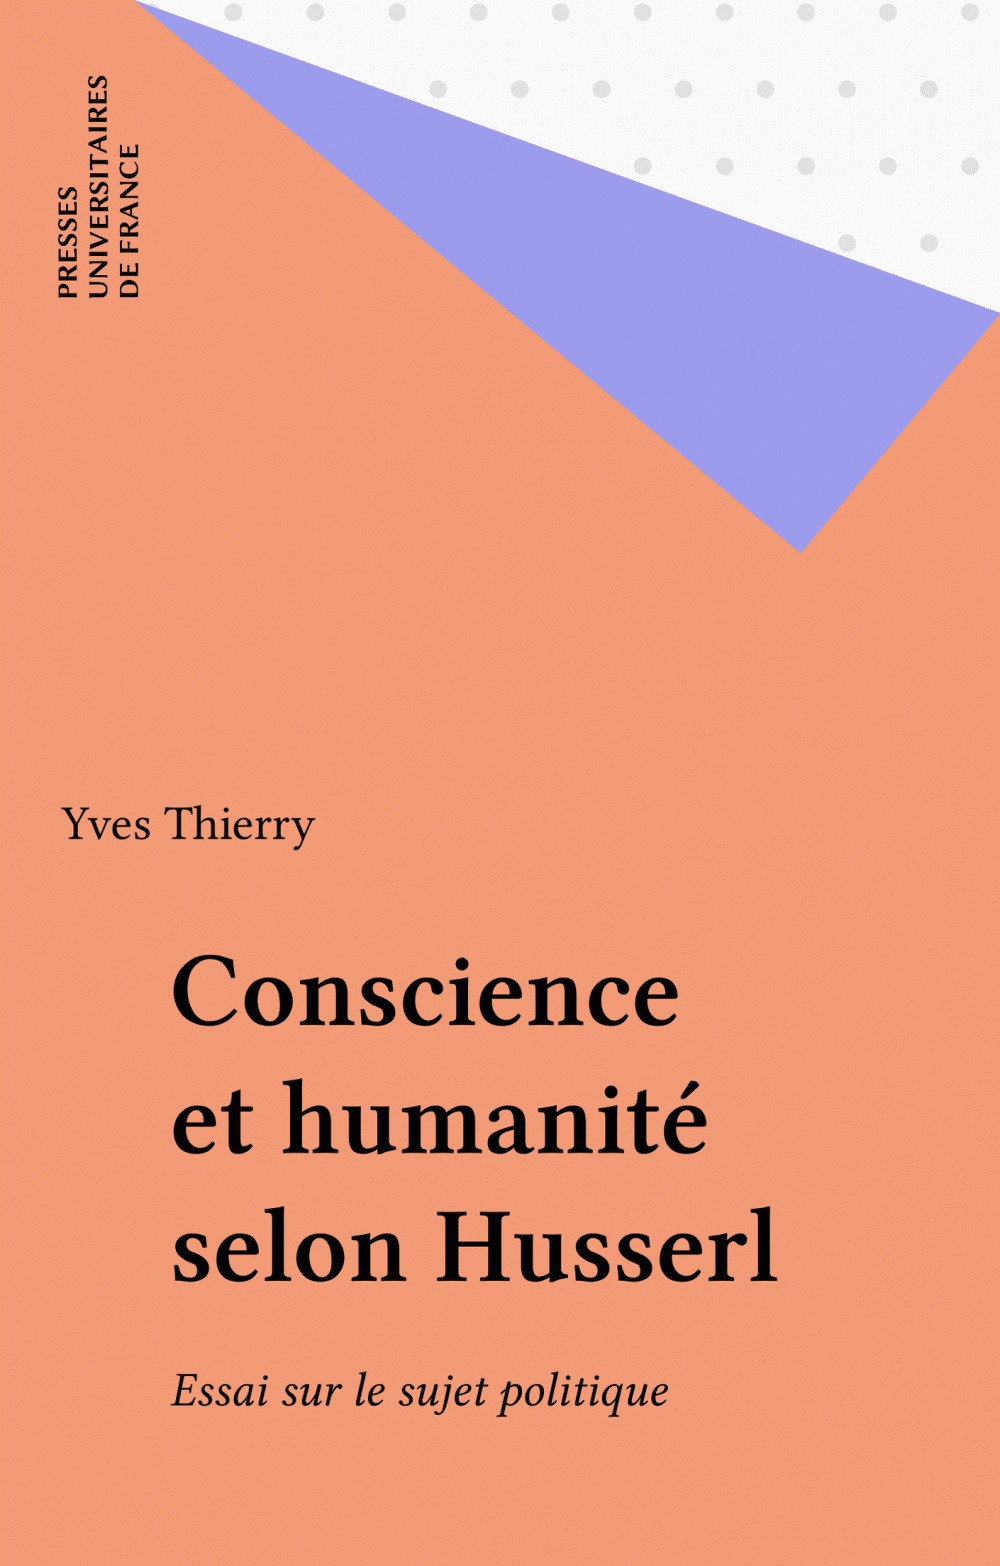 Yves Thierry Conscience et humanité selon Husserl